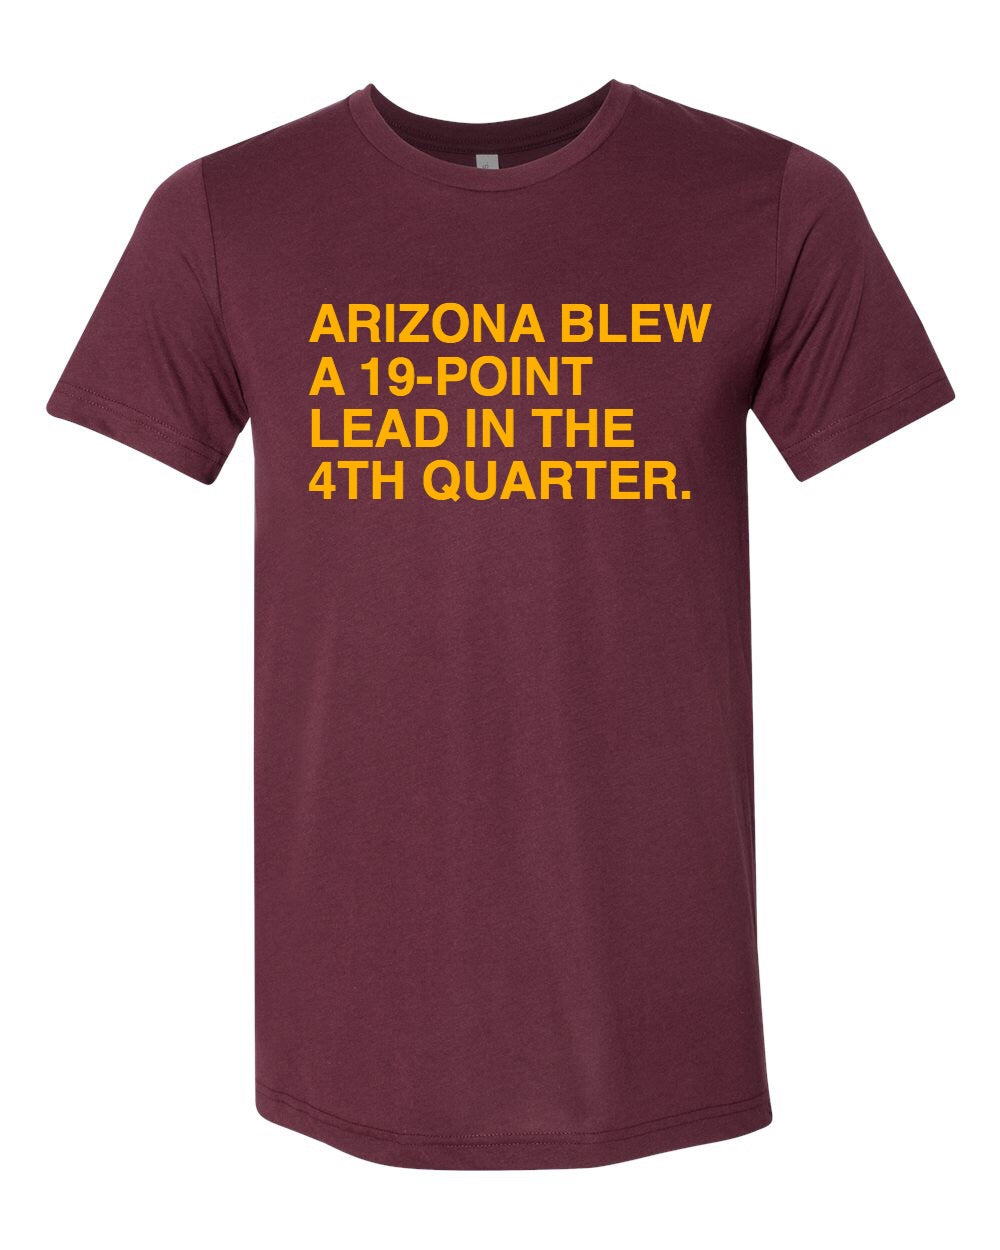 ARIZONA BLEW A 19-POINT LEAD. Unisex T-shirt